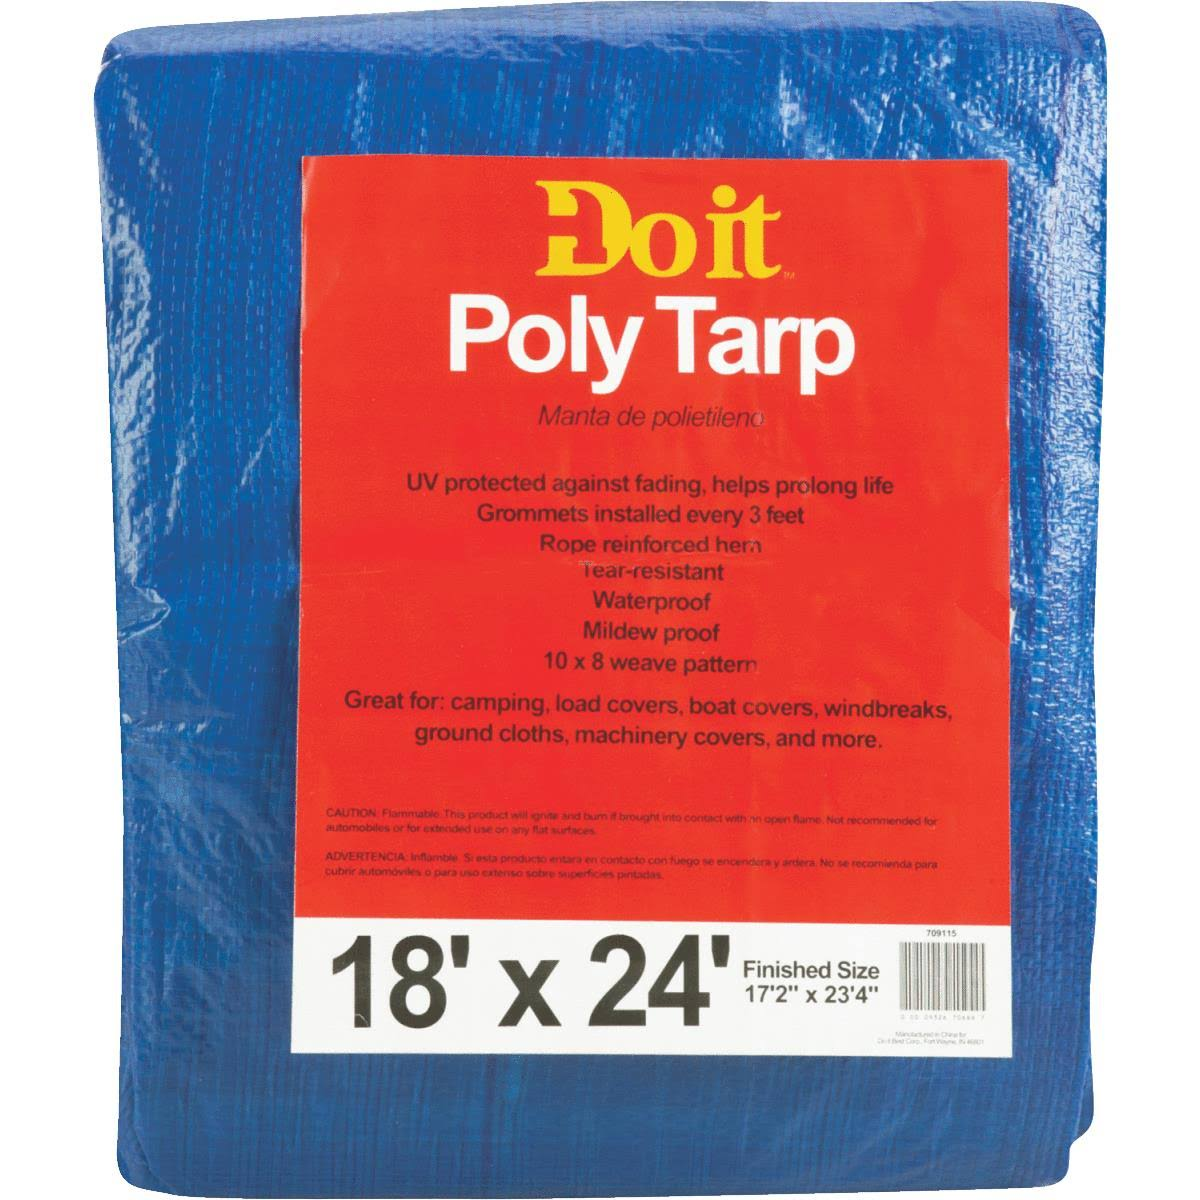 Do It Medium Duty Poly Tarp, 709115